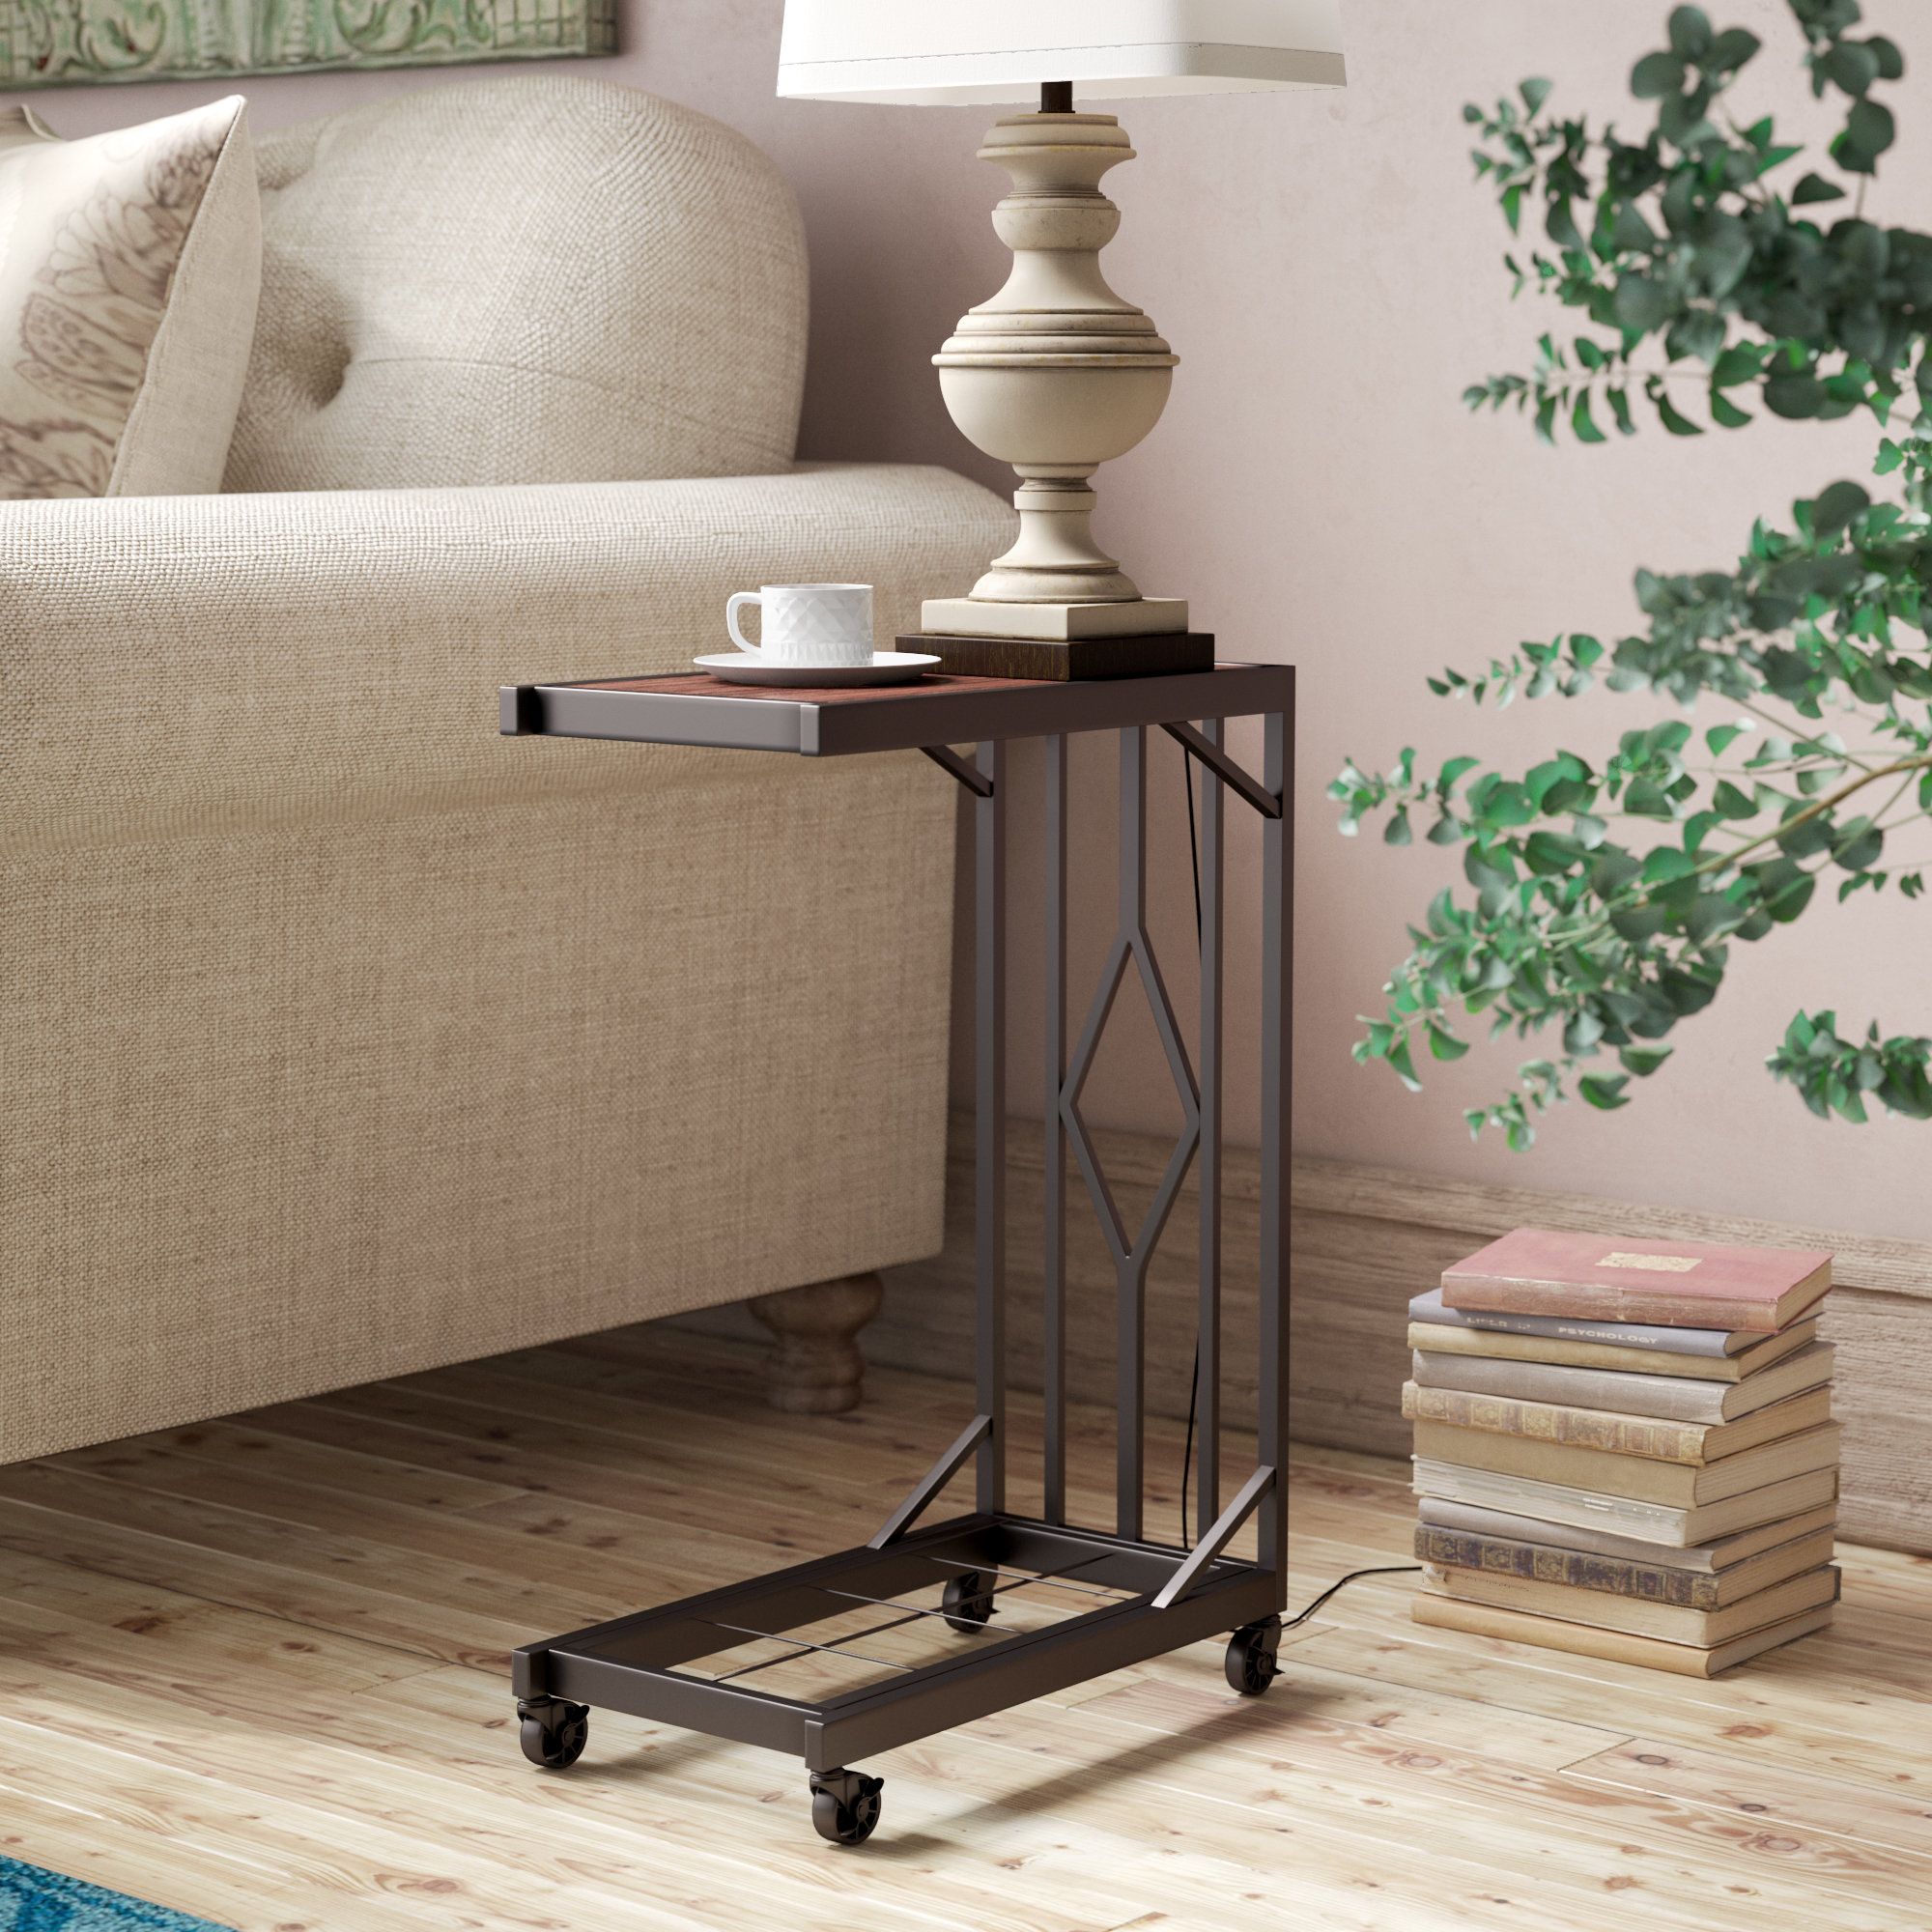 end table with wheels aiyana mobile snack room essentials mixed material accent tall bedside drawers windham coffee skinny black patio blue mosaic barnwood tables aluminium door